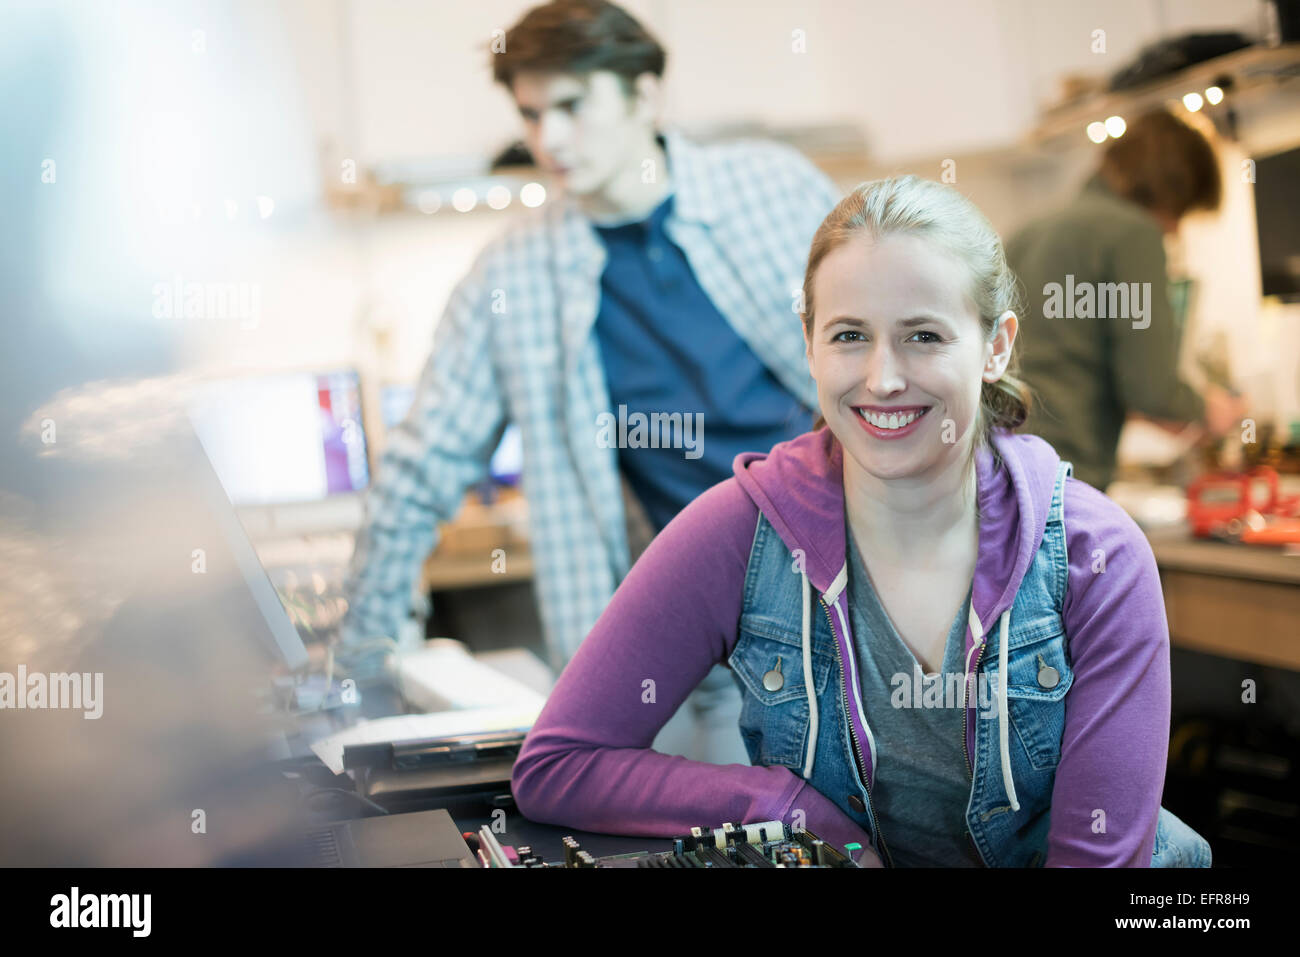 A young woman and man, staff in a computer repair shop. - Stock Image